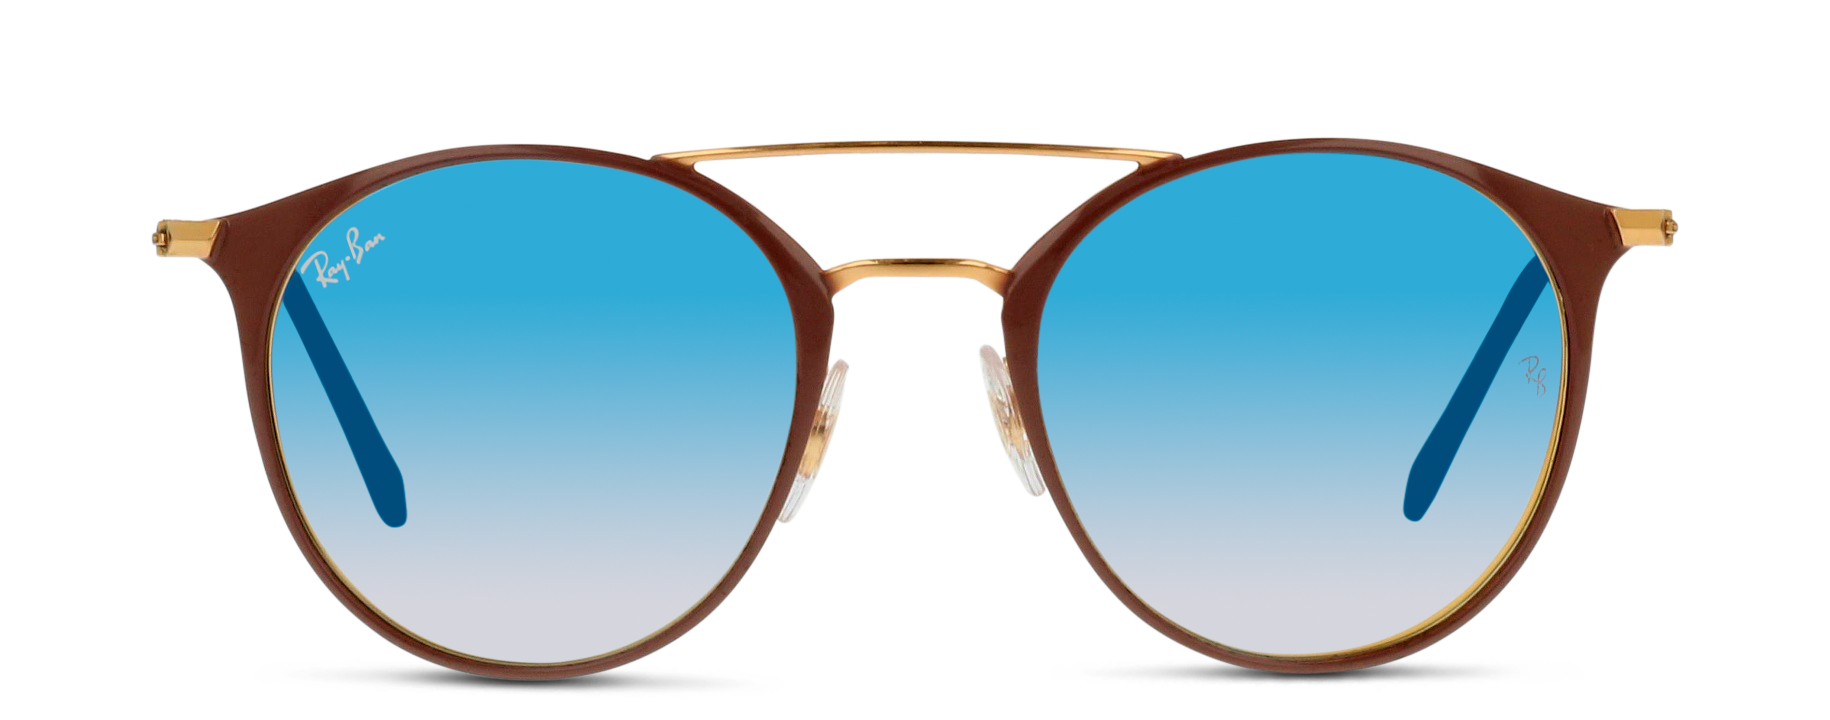 Front Ray-Ban Ray-Ban 0RB3546 90118B 52/20 Goud, Roze/Blauw